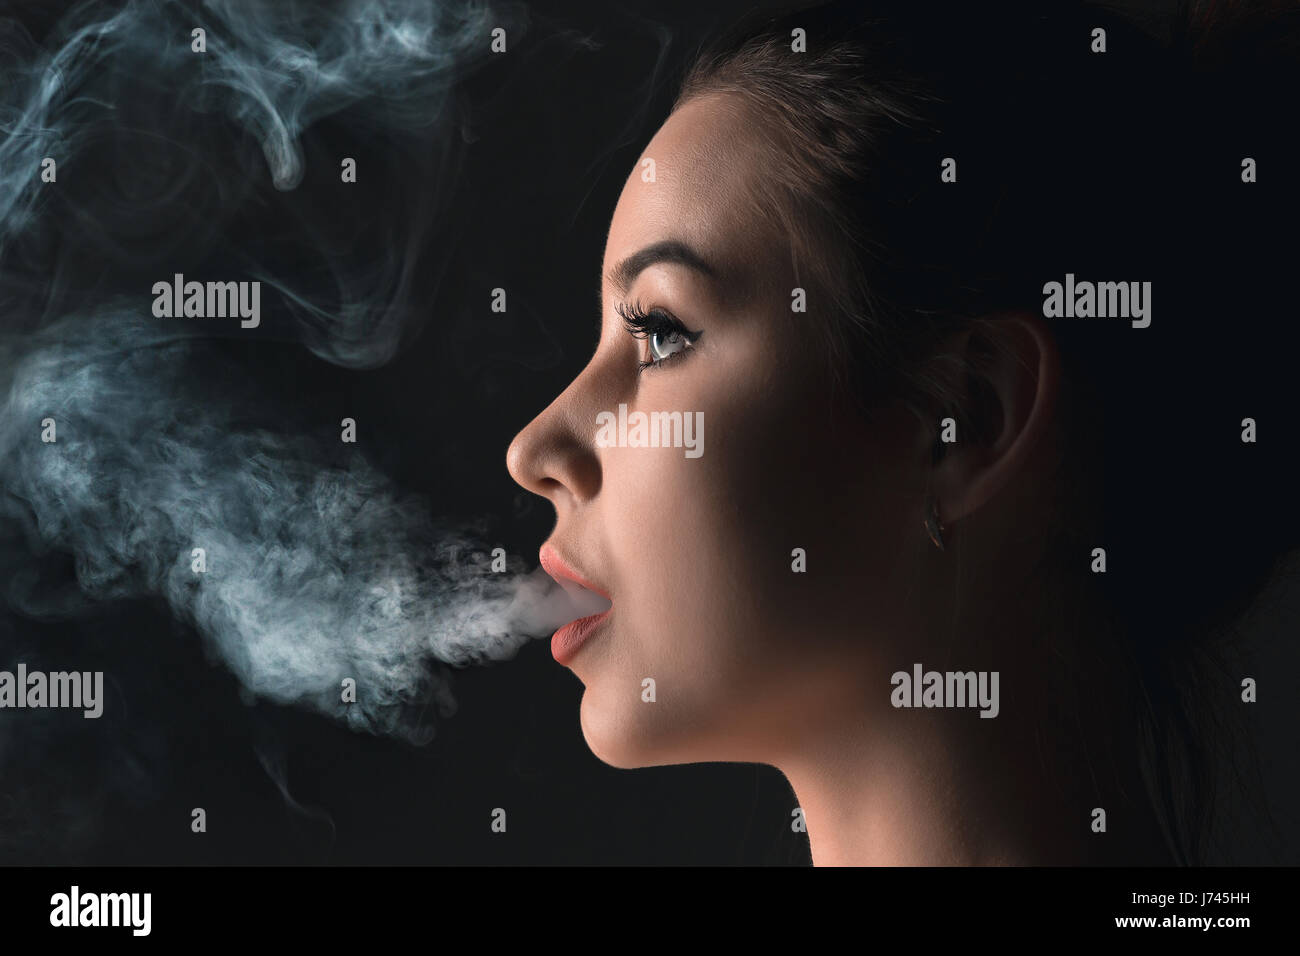 The face of vaping young woman at black studio - Stock Image